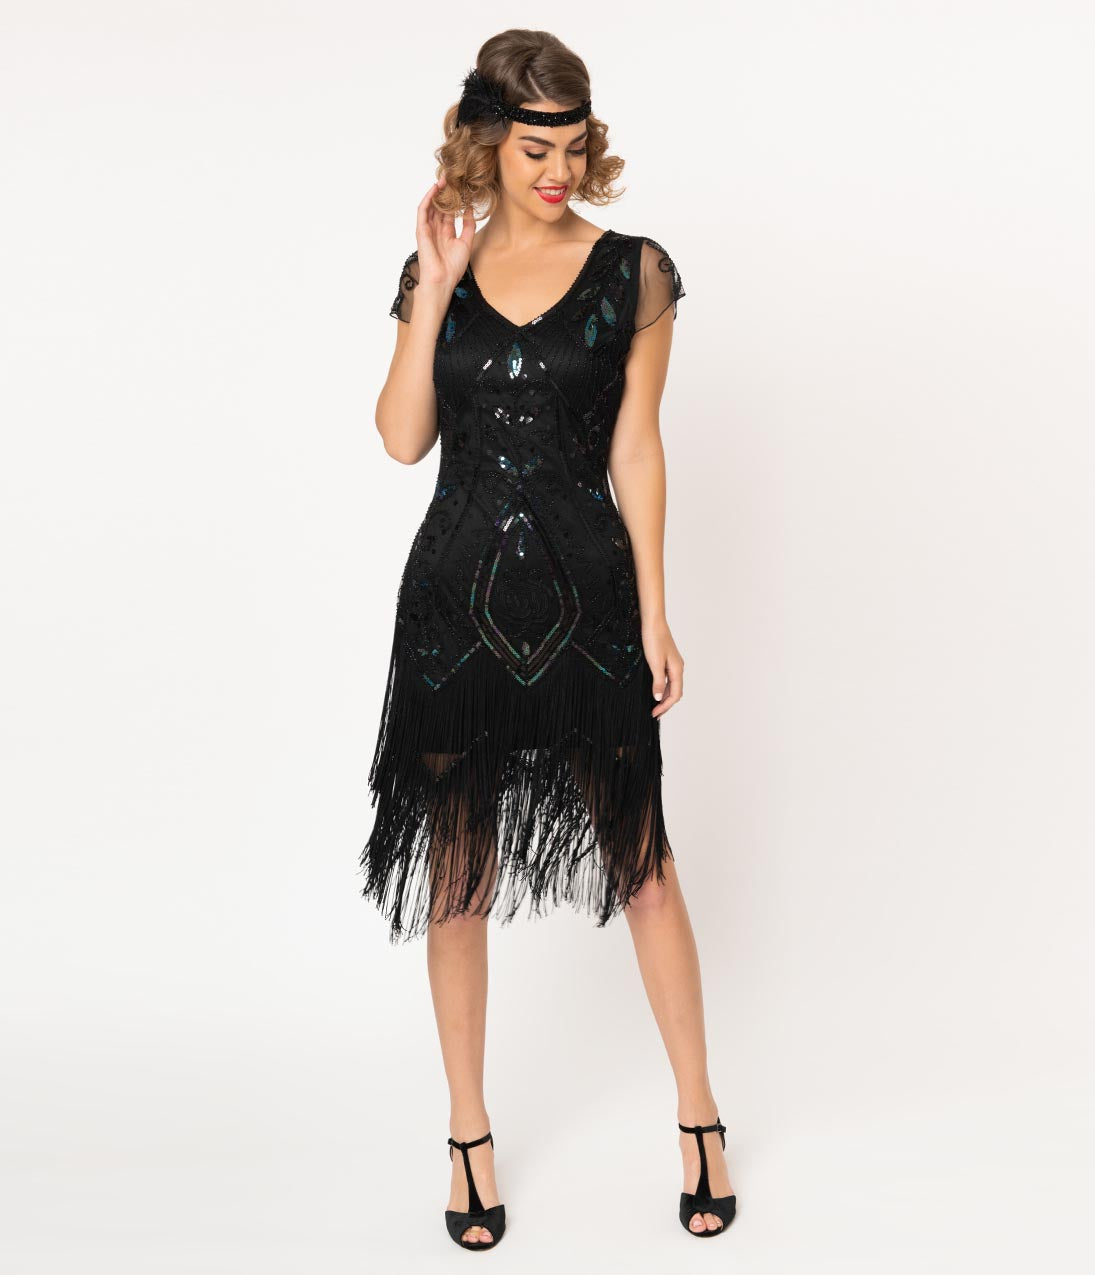 1930s Dresses | 30s Art Deco Dress Unique Vintage 1920S Black Beaded Noele Fringe Flapper Dress $58.00 AT vintagedancer.com